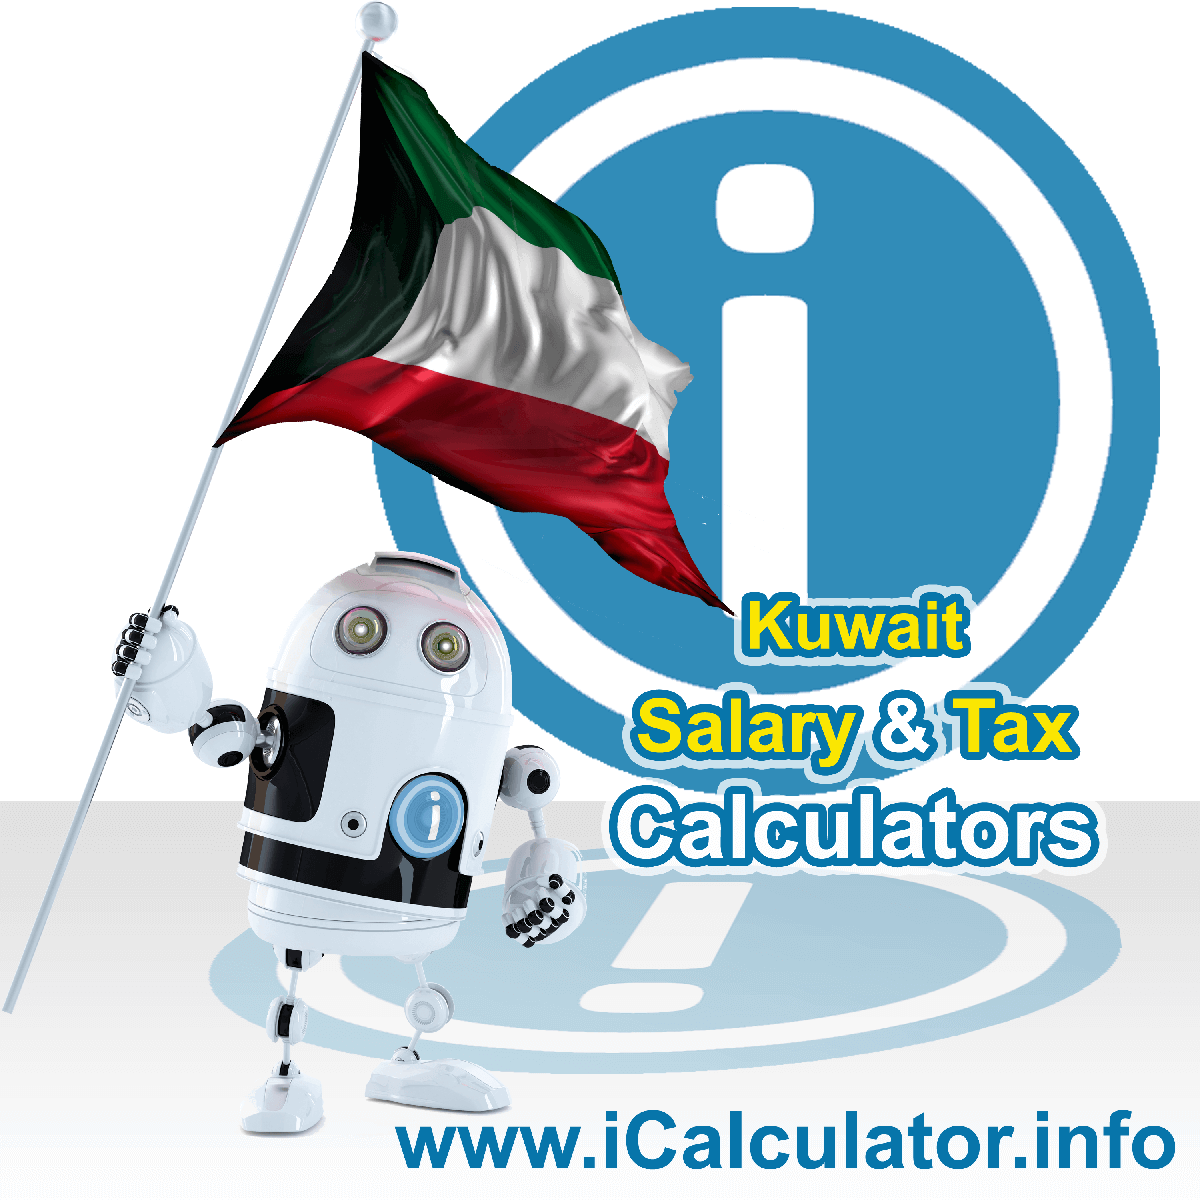 Kuwait Tax Calculator. This image shows the Kuwait flag and information relating to the tax formula for the Kuwait Salary Calculator